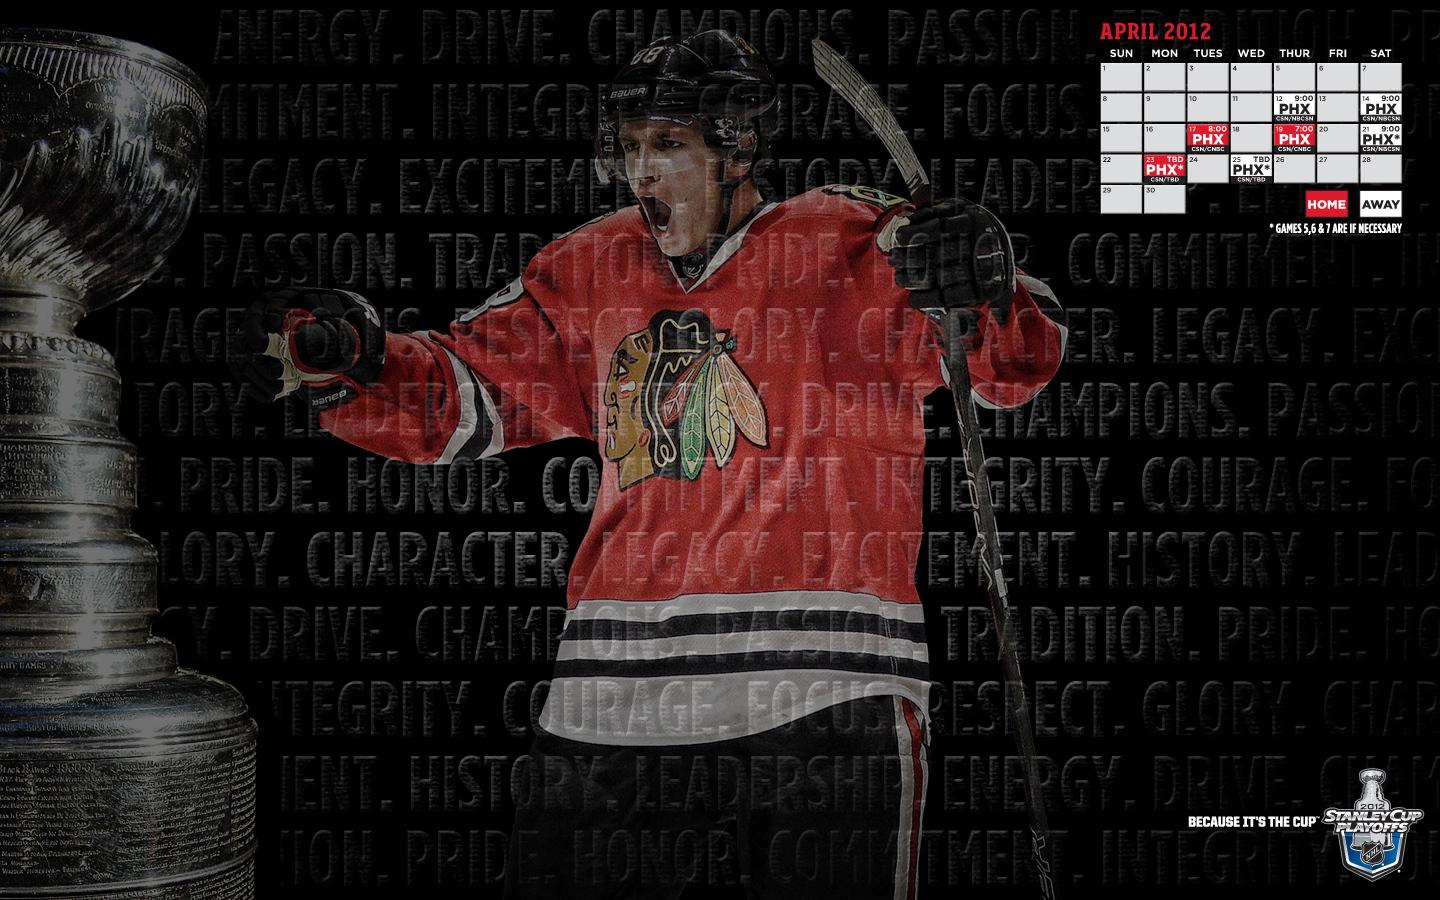 2012-playoff-schedule-wallpaper-qf-wide.jpg (1440×900)